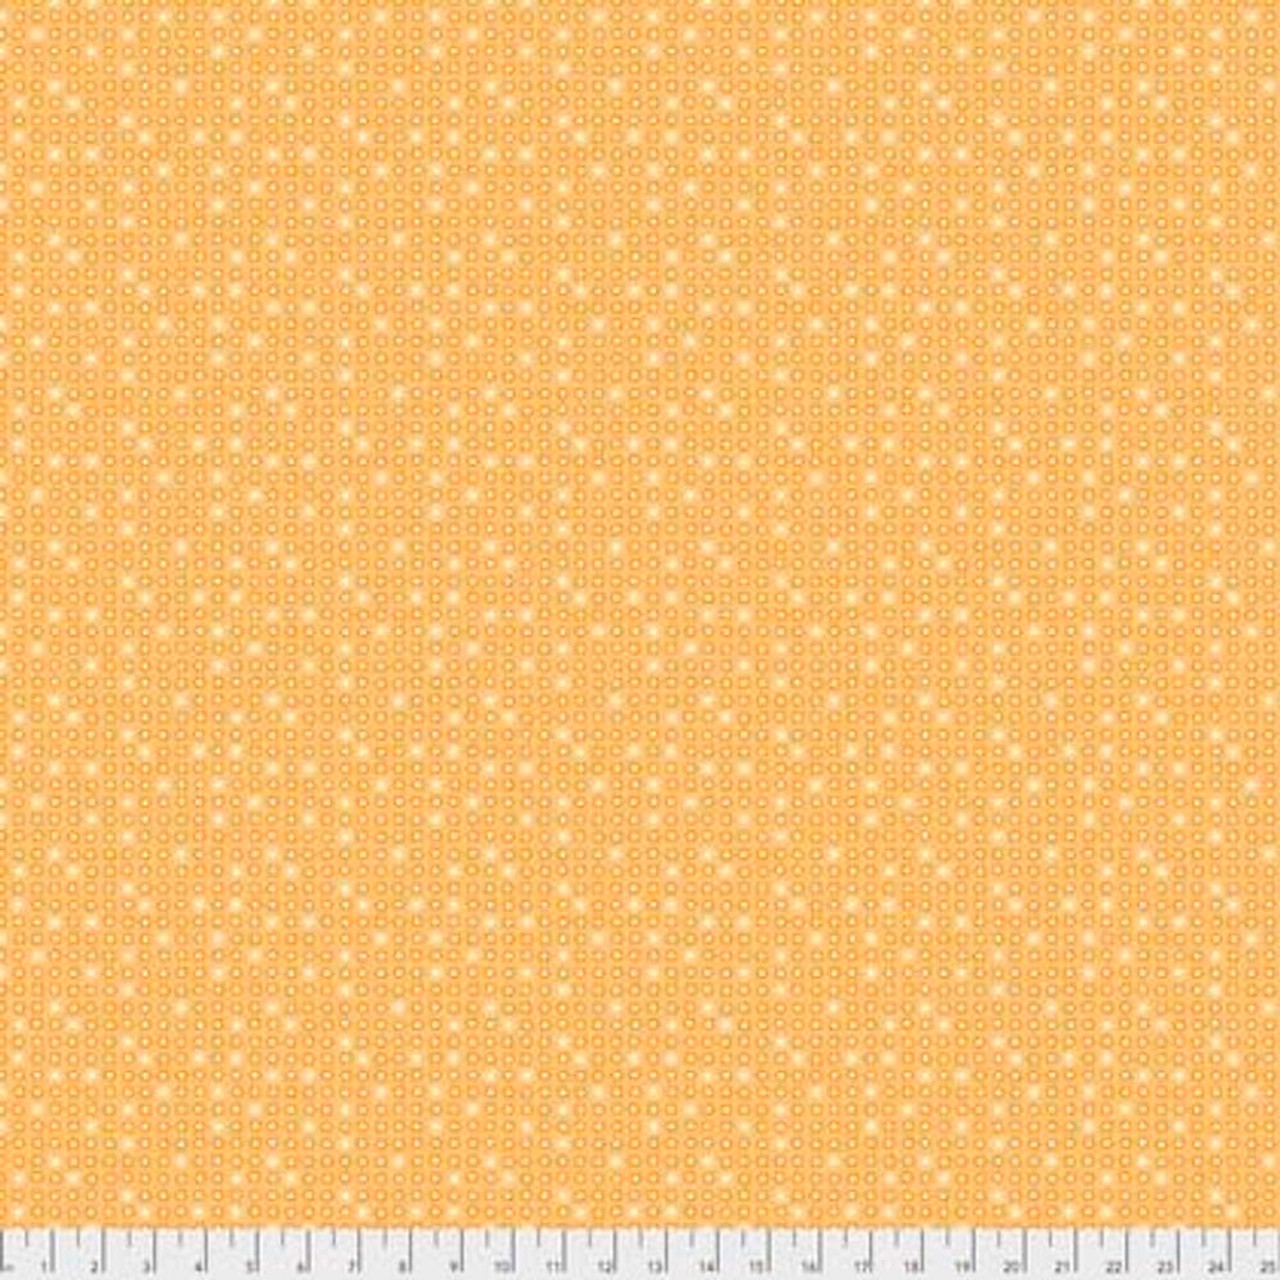 Coats PWCC013 Daisy Daze Daisies Yellow Cotton Quilting Fabric By Yd